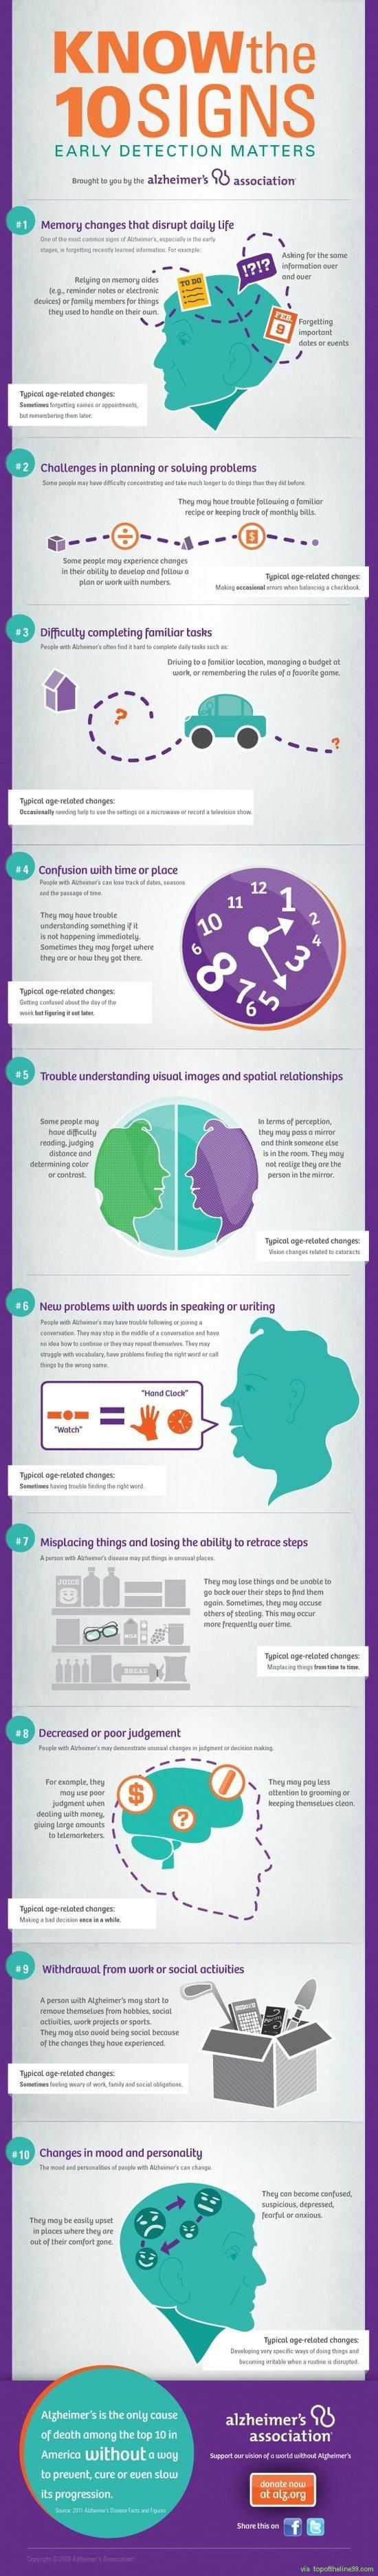 the 10 signs infographic via topoftheline99